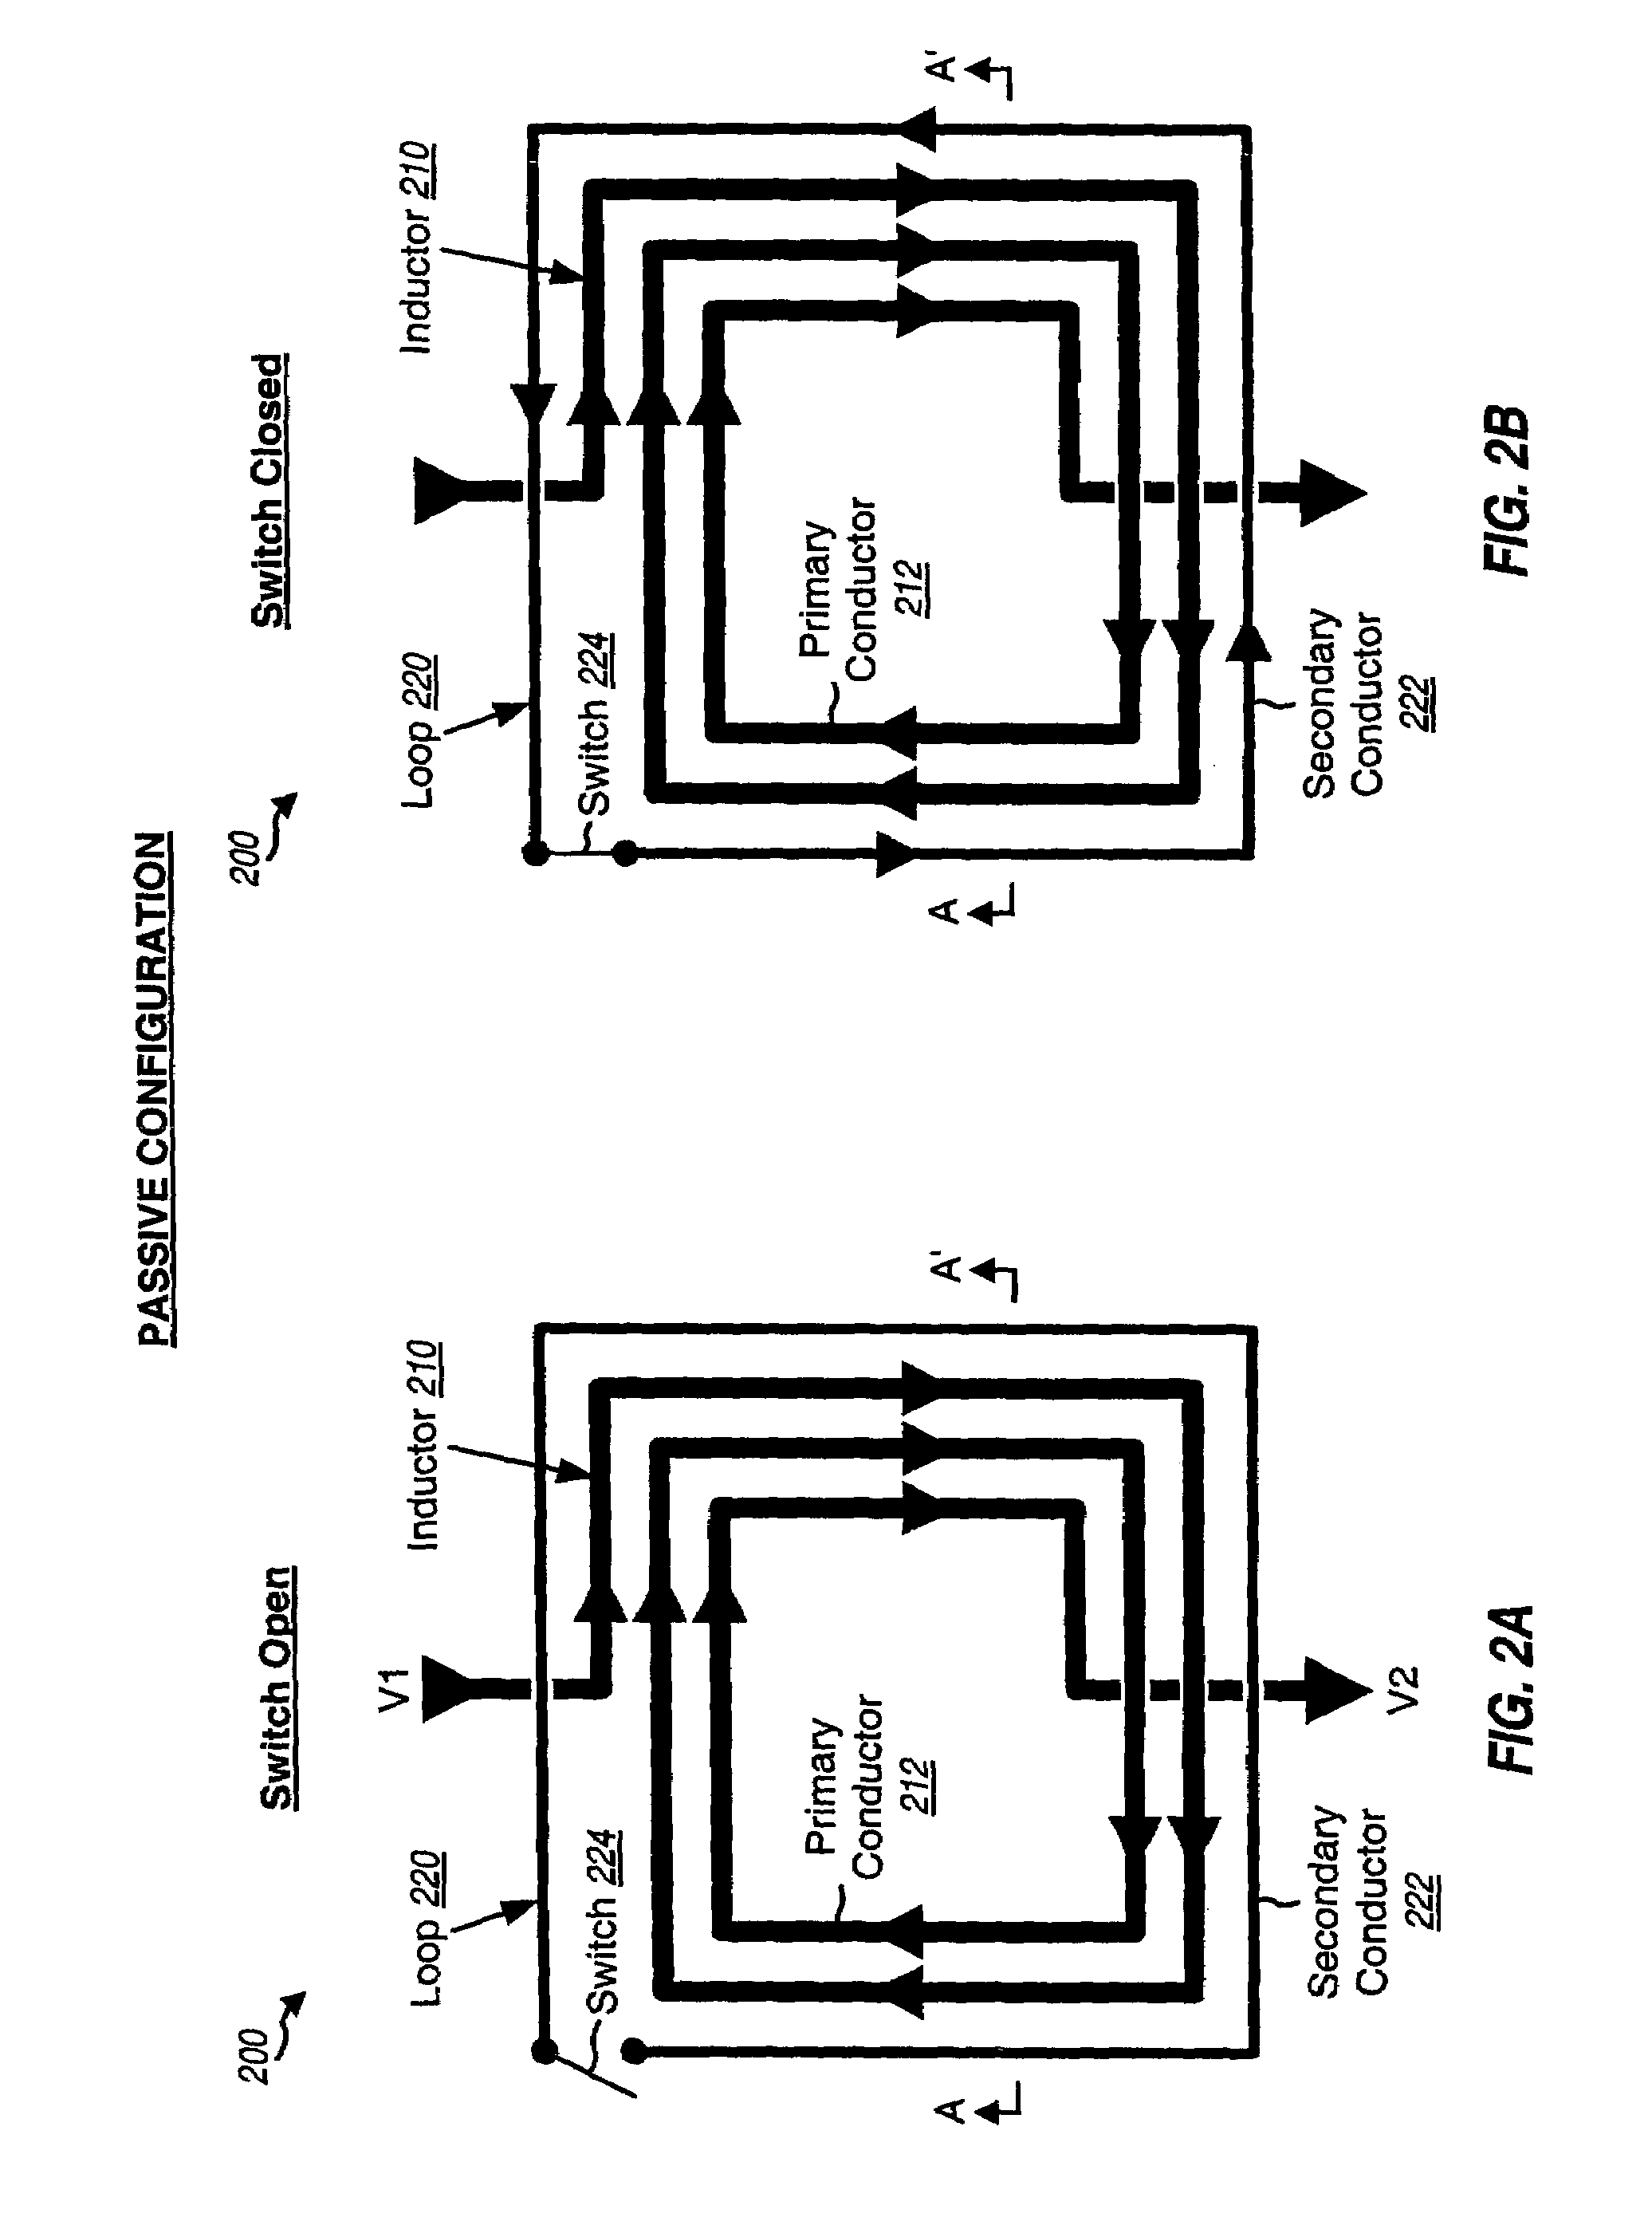 patent us7460001 - variable inductor for integrated circuit and printed circuit board